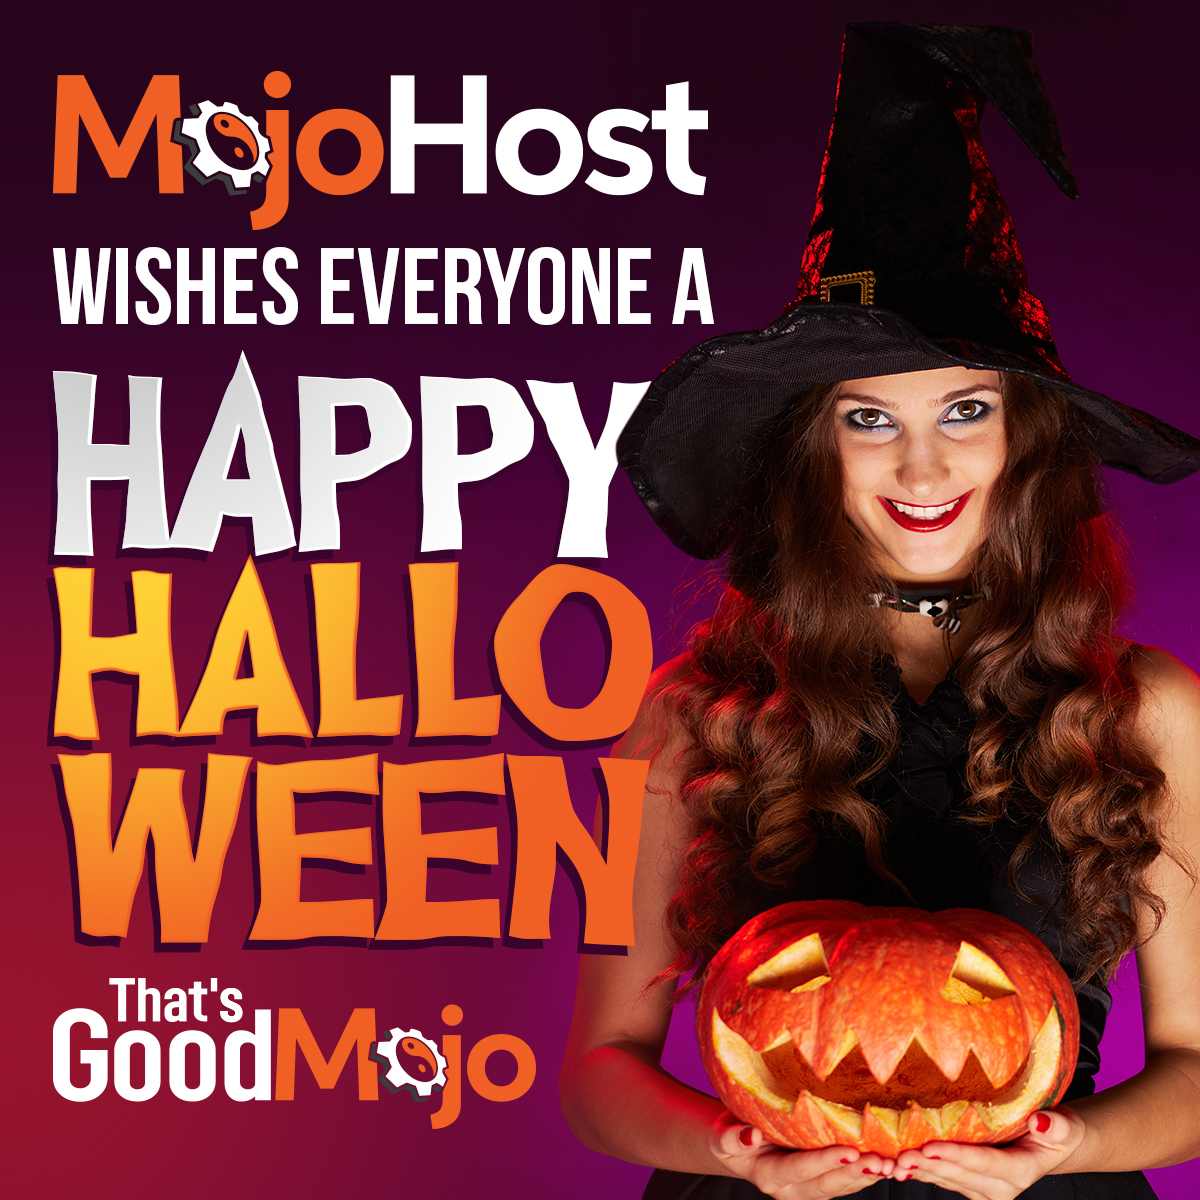 Happy Halloween To All MojoHost Customers, Partners And Friends!